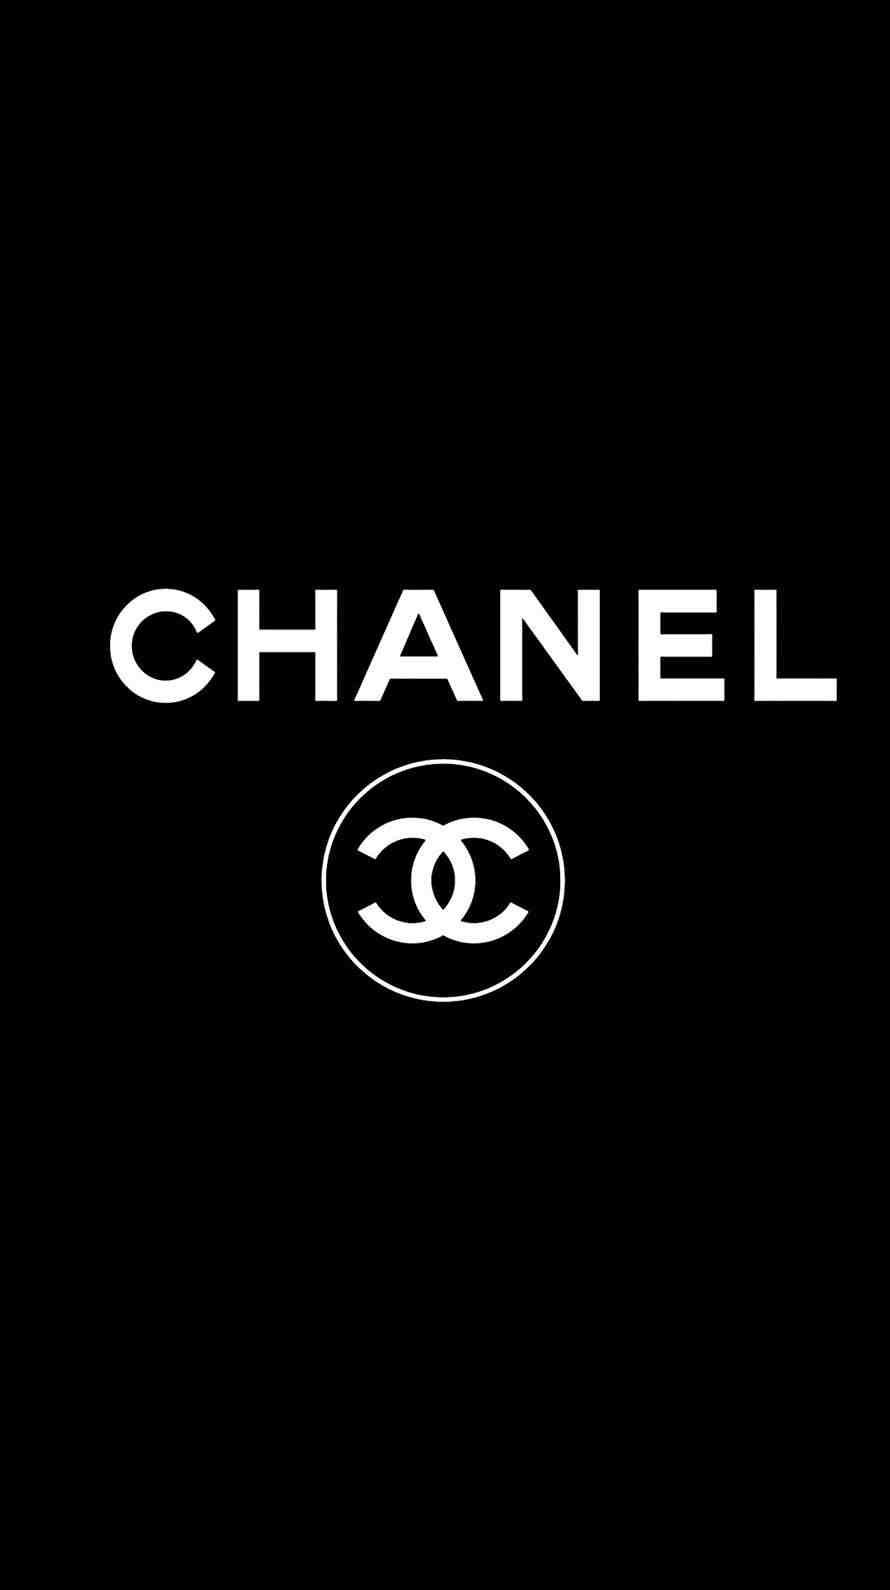 Coco Chanel Iphone Wallpaper Fondo De Pantalla Chanel